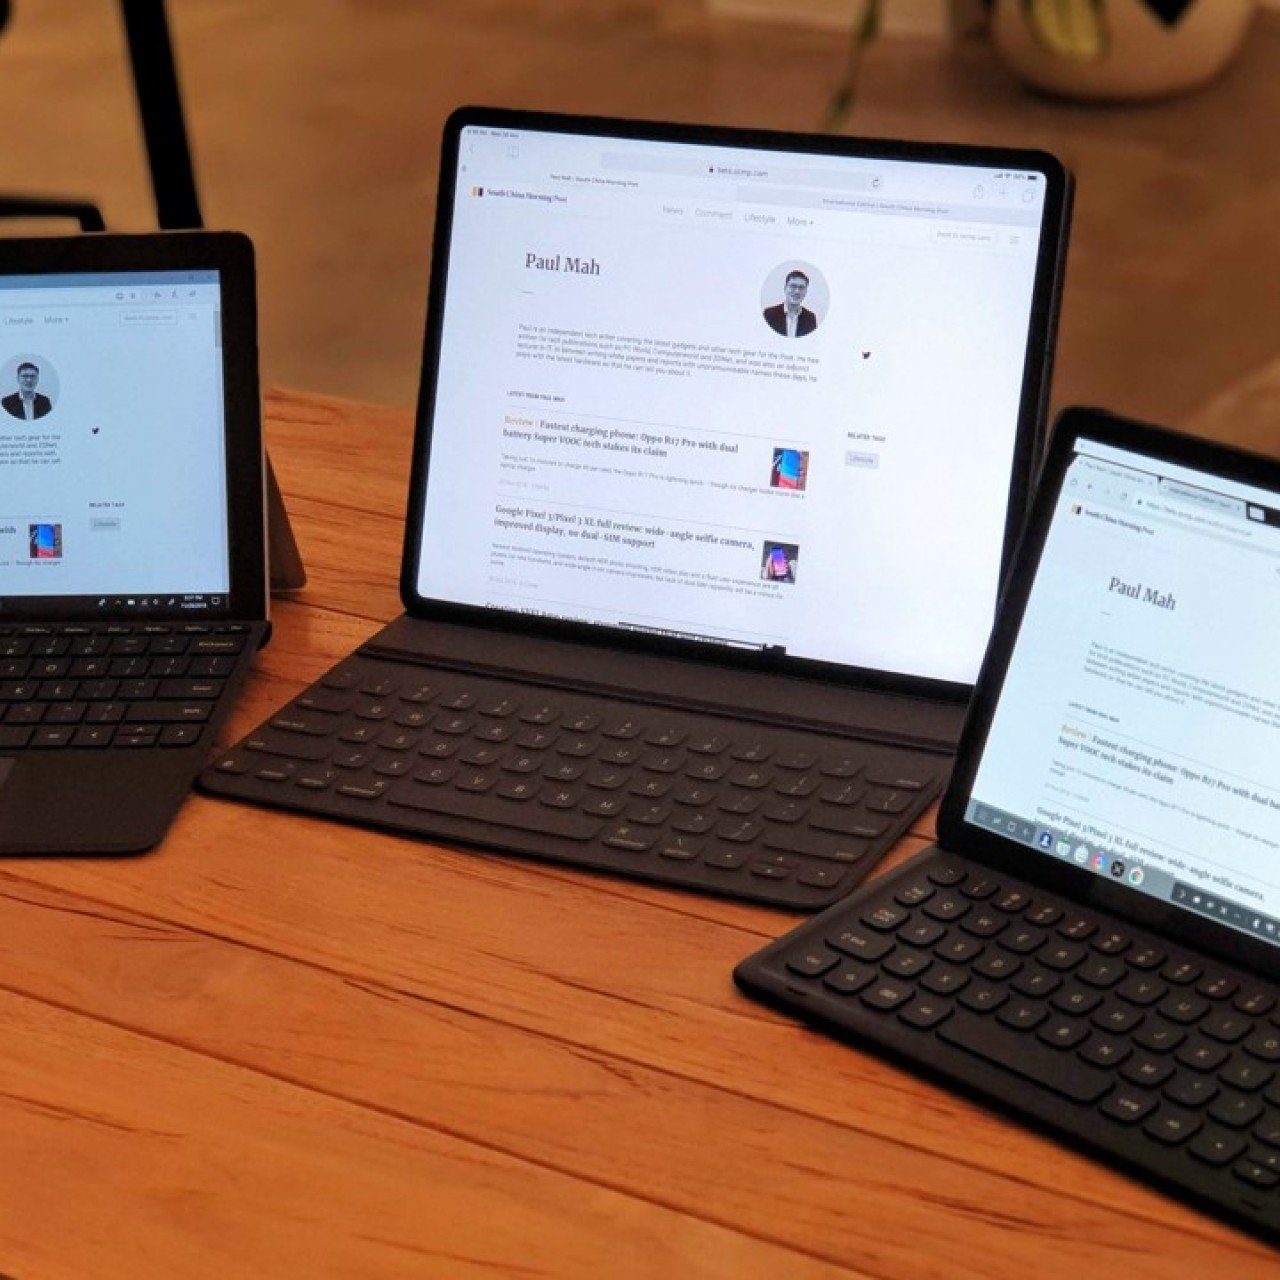 Apple, Samsung and Microsoft tablets tested to find the best one for